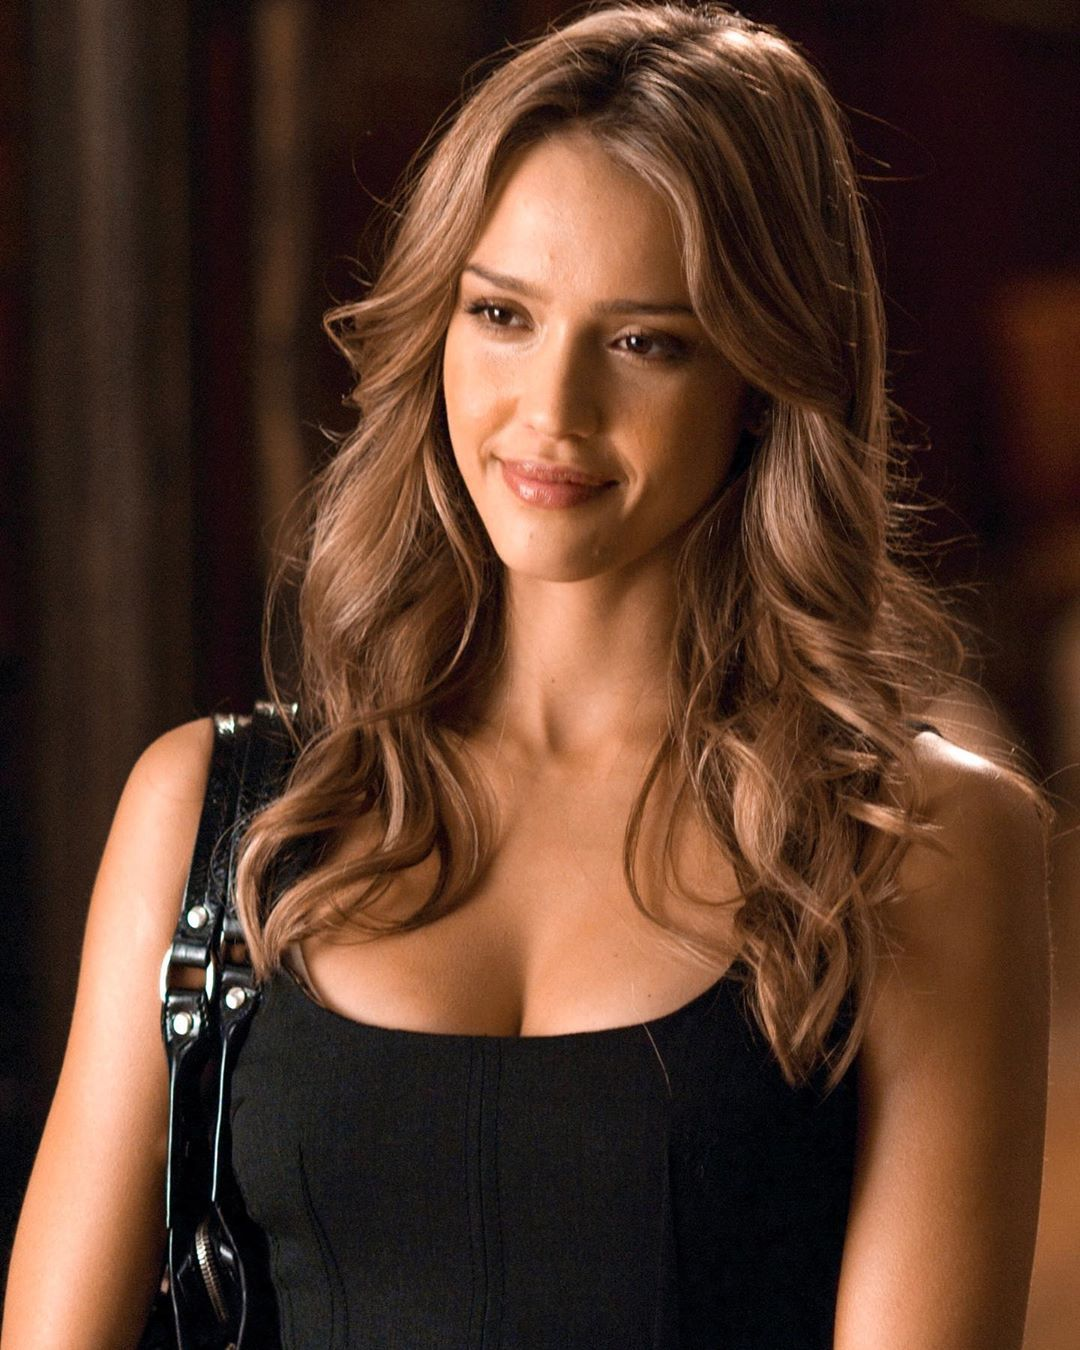 Jessica Alba Sexy Hot Images - Sexy Hot Images